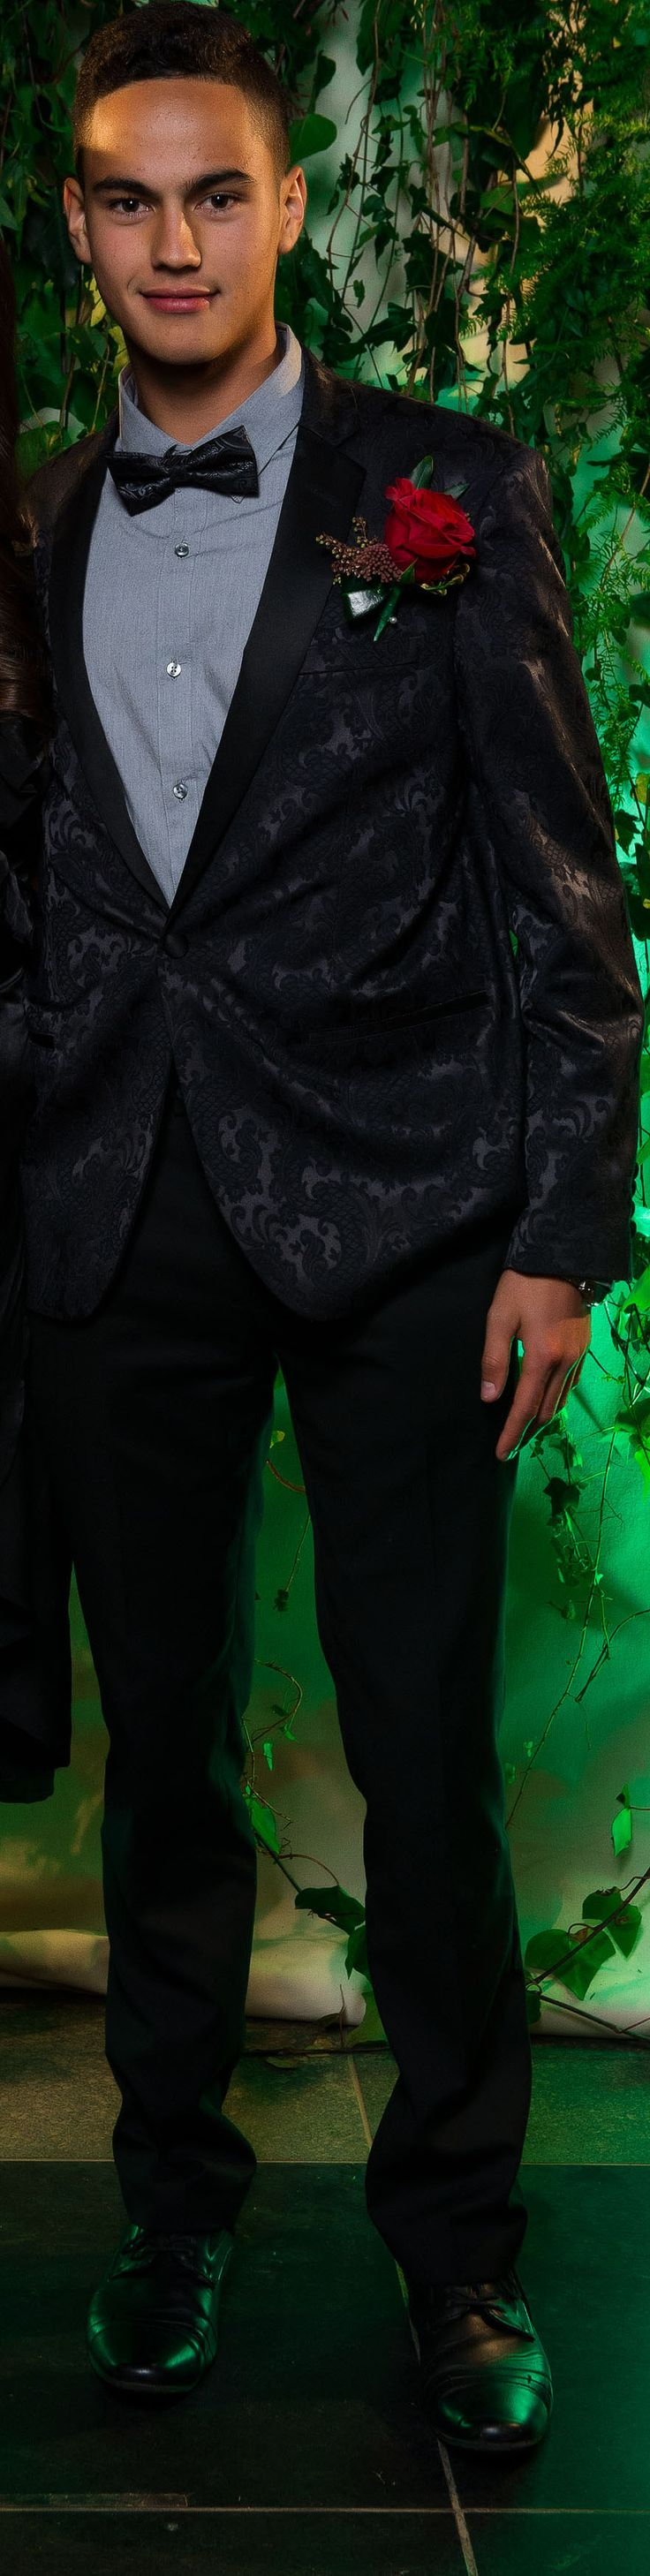 Waiheke High School Ball 2017. Adore this unique suit!